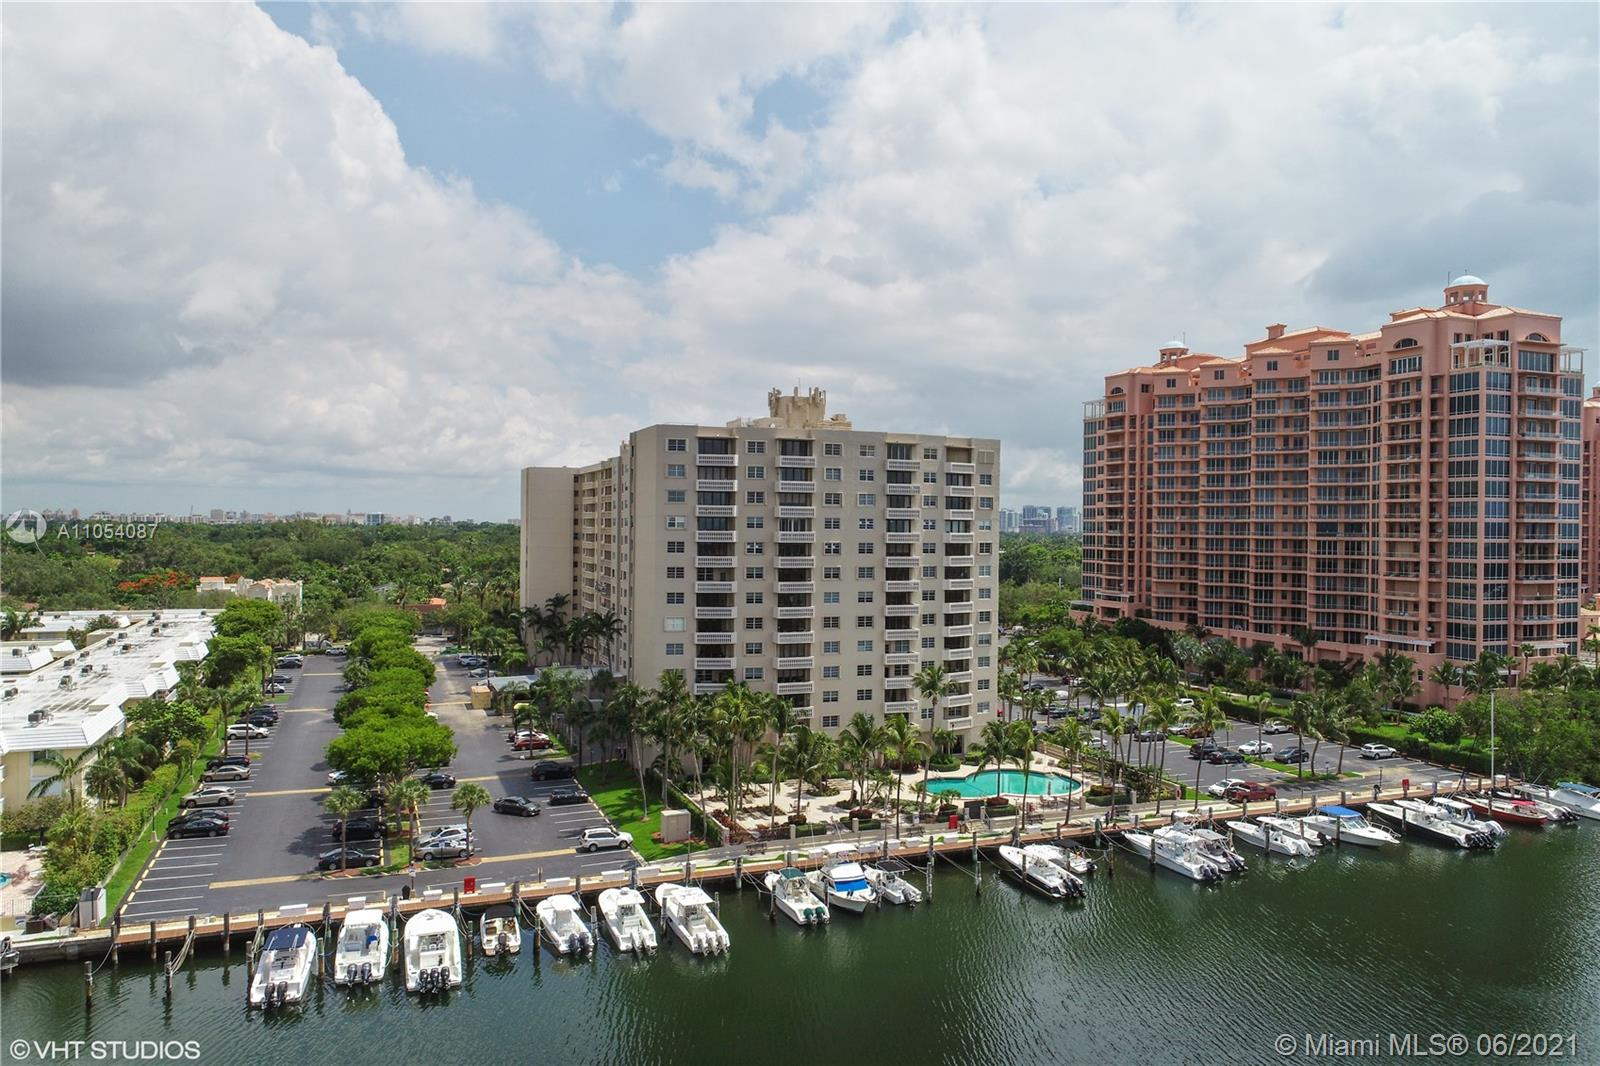 Gables Waterway Towers is a well established doorman building with 24/7 valet and security. The building just completed a major $8.5 million renovation, which also included our 40 & 50 year  Miami Dade Recertification improvements to mechanical and safety code updates for the building. Unit owners now approved to add in unit washer/dryers with proper permitting and approval. Situated on the bay just 1.5 miles from Downtown Coconut Grove, and close to UM, South Miami and Downtown Coral Gables and the Miami Airport. Our heated pool and gym, Party and game room face the bay, with boat slips that come up for sale or rent. There is a current assessment of $ 19,200 that will be paid at closing by the seller. Tenant occupied on month to month basis.